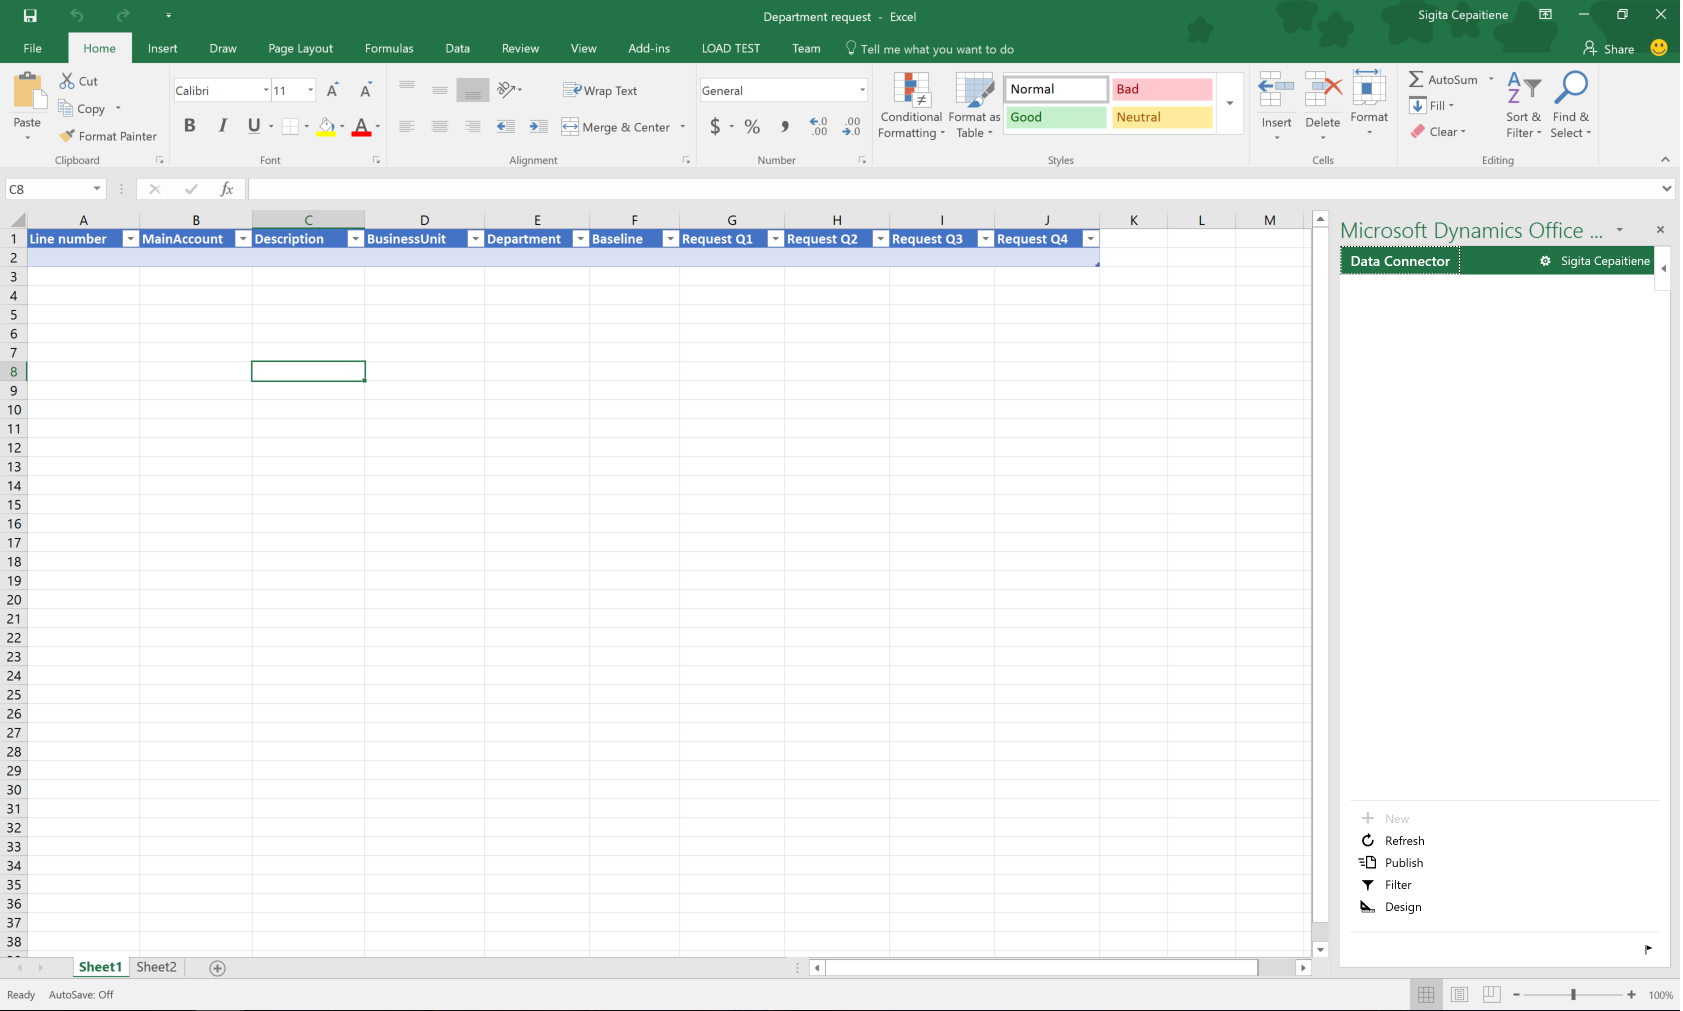 The Excel File Cannot Update Overlapping Columns During Because Data In Table Could Become Out Of Date And Inaccurate